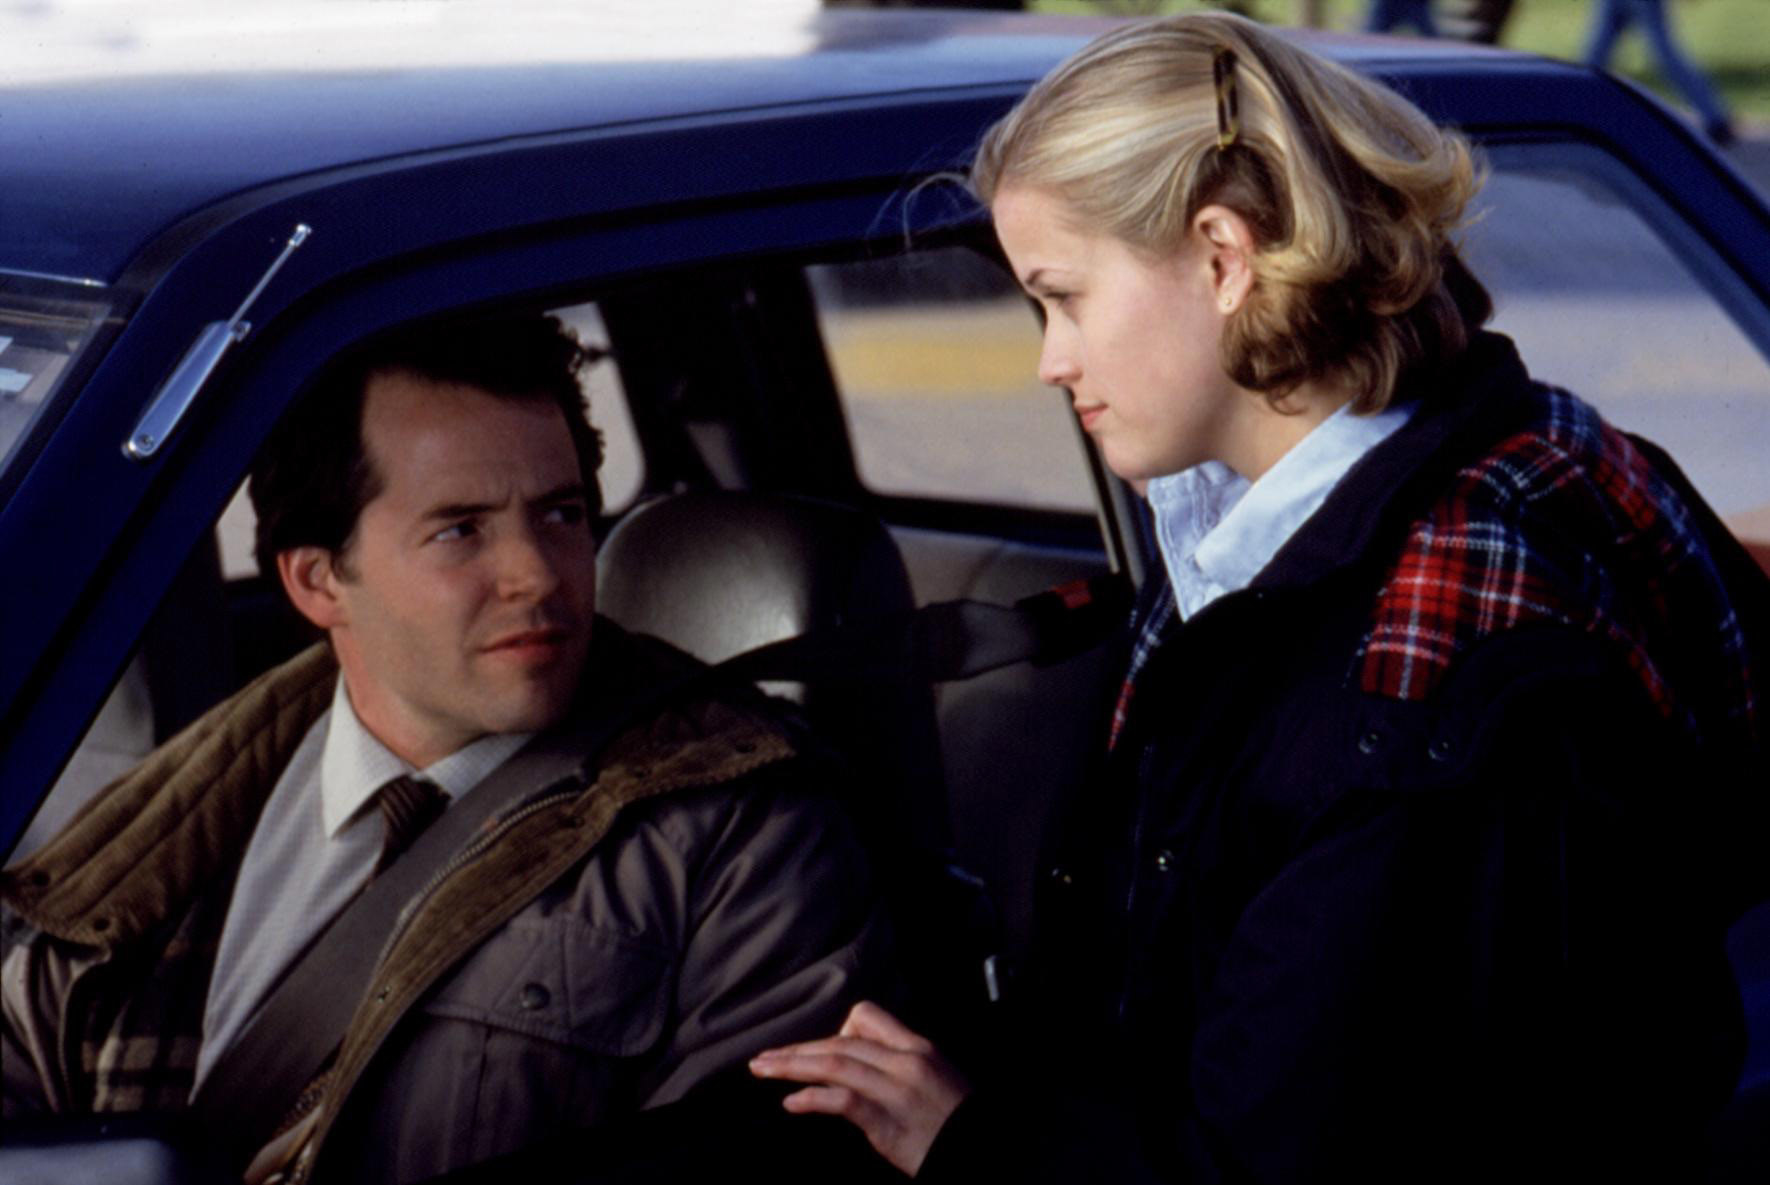 Matthew Broderick in a car talking to Reese Witherspoon outside it